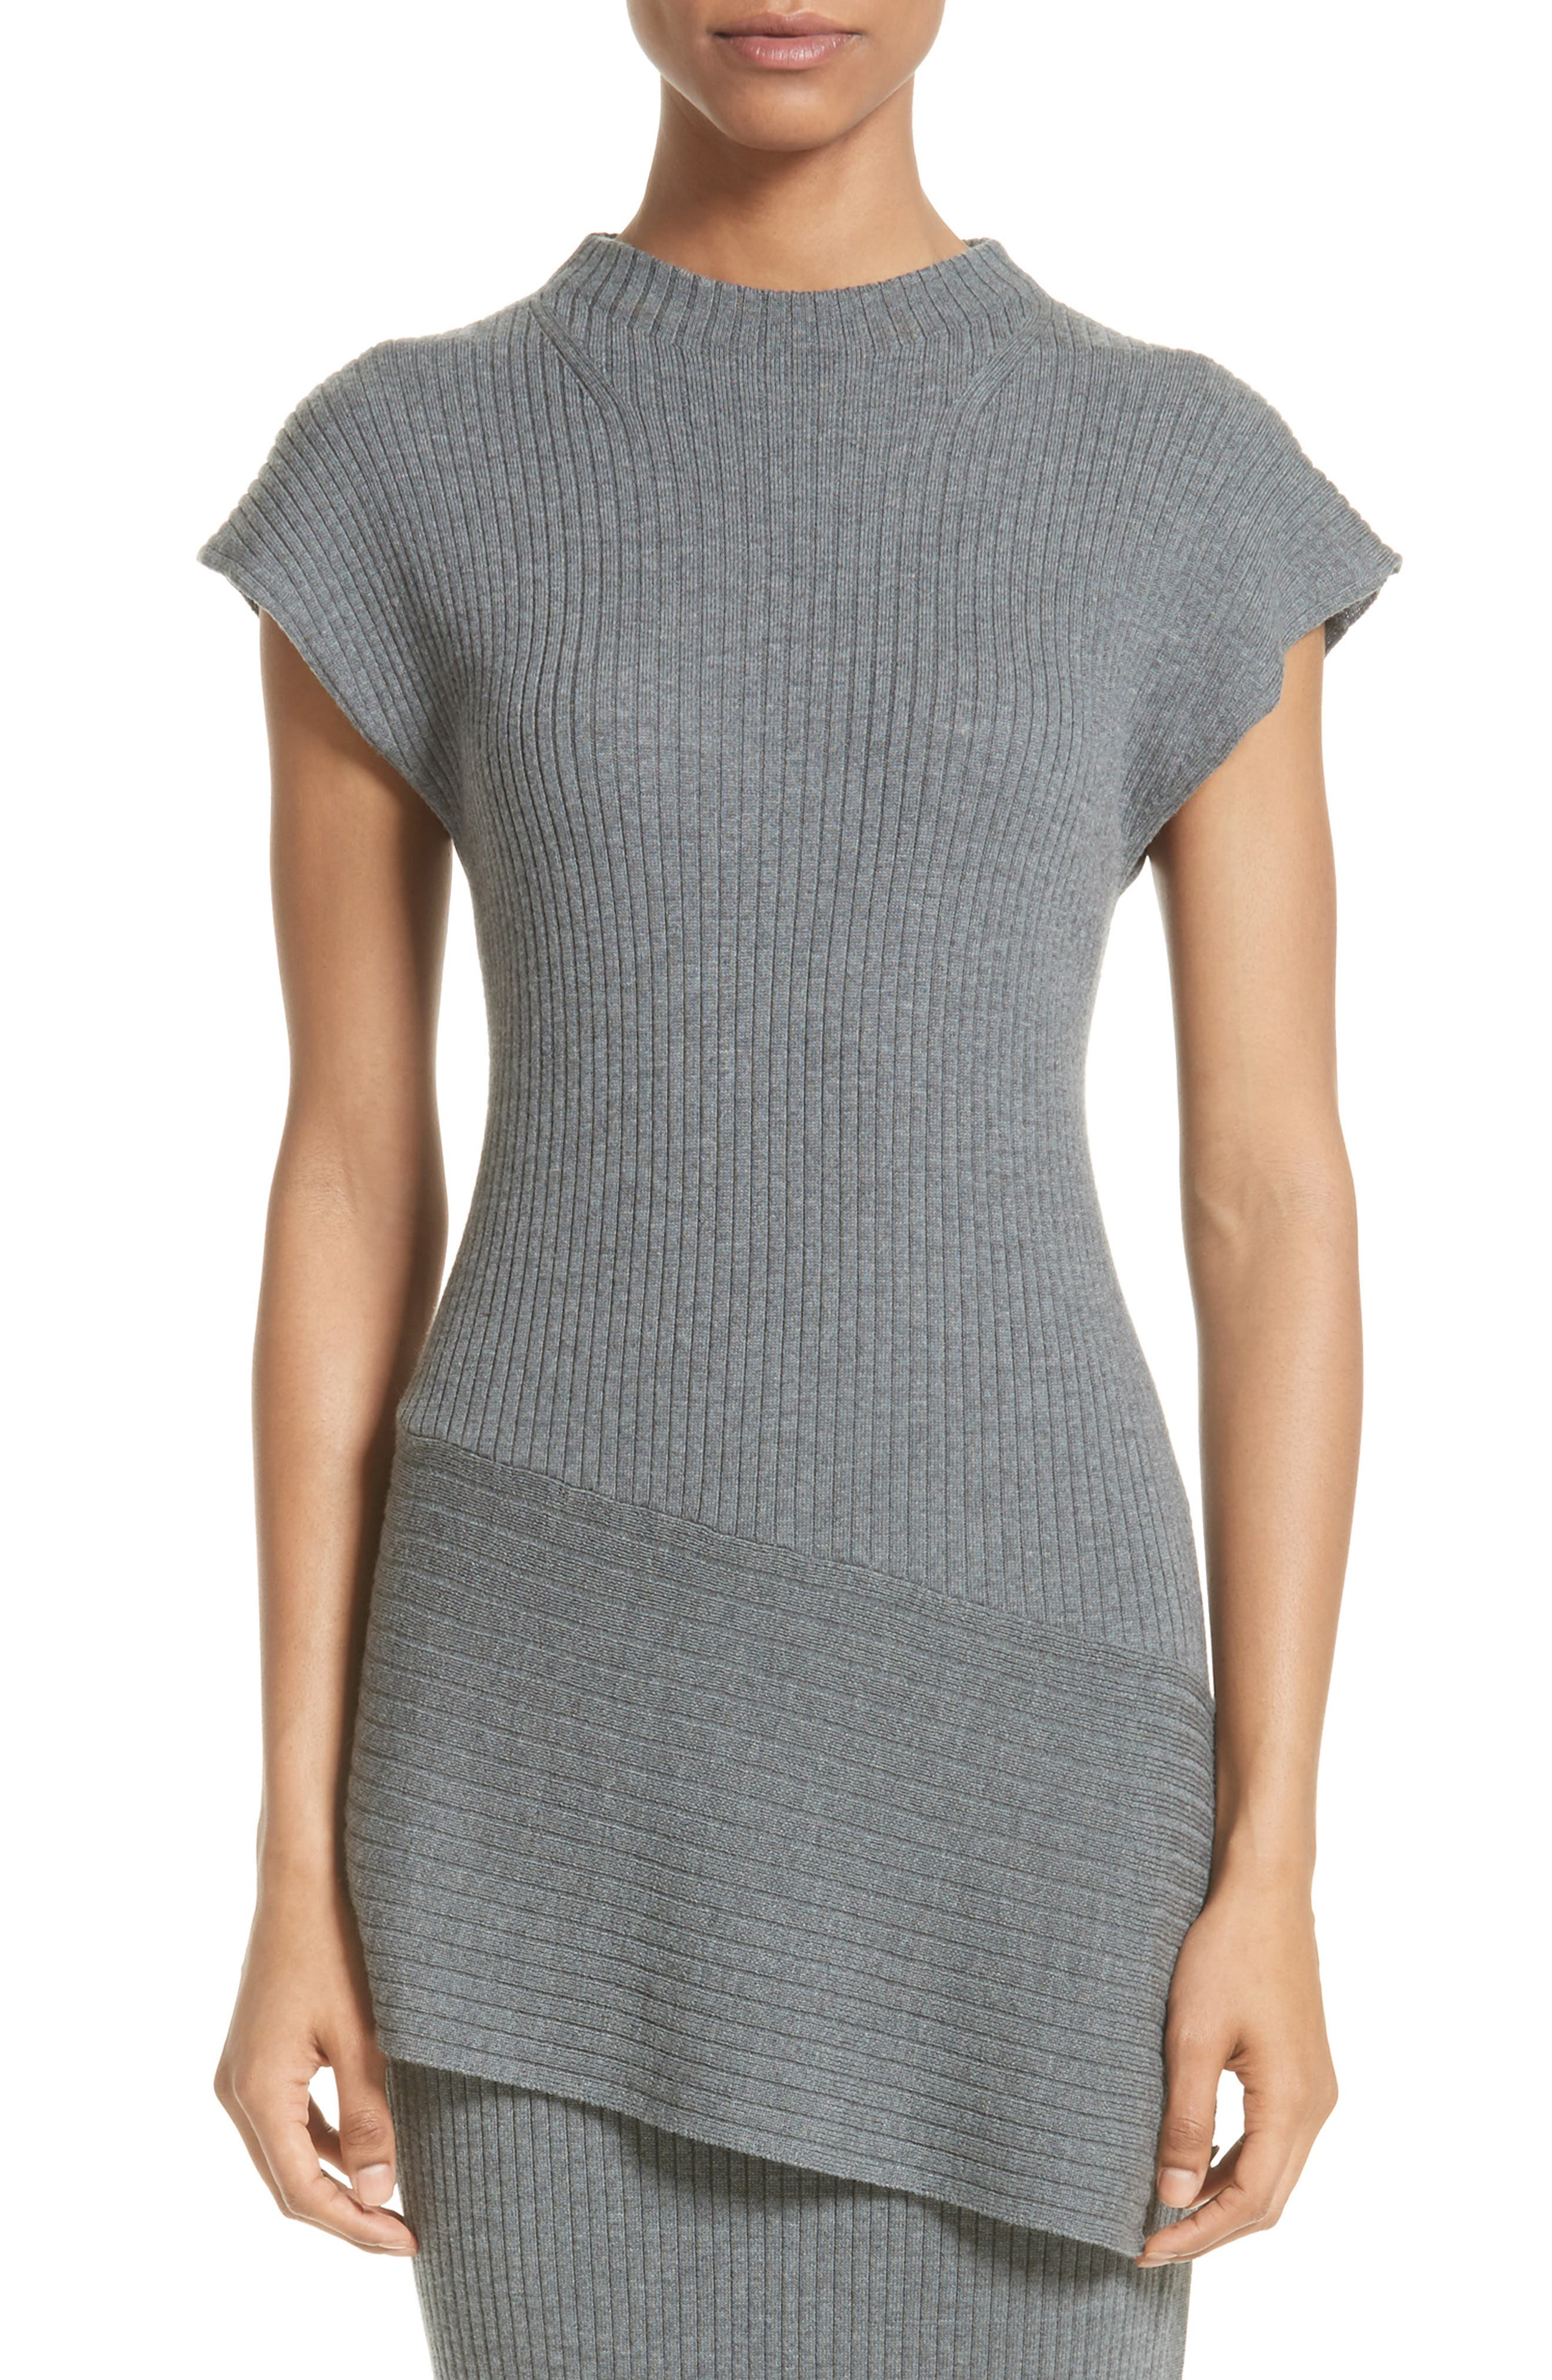 Alternate Image 1 Selected - St. John Collection Asymmetrical Rib Knit Top